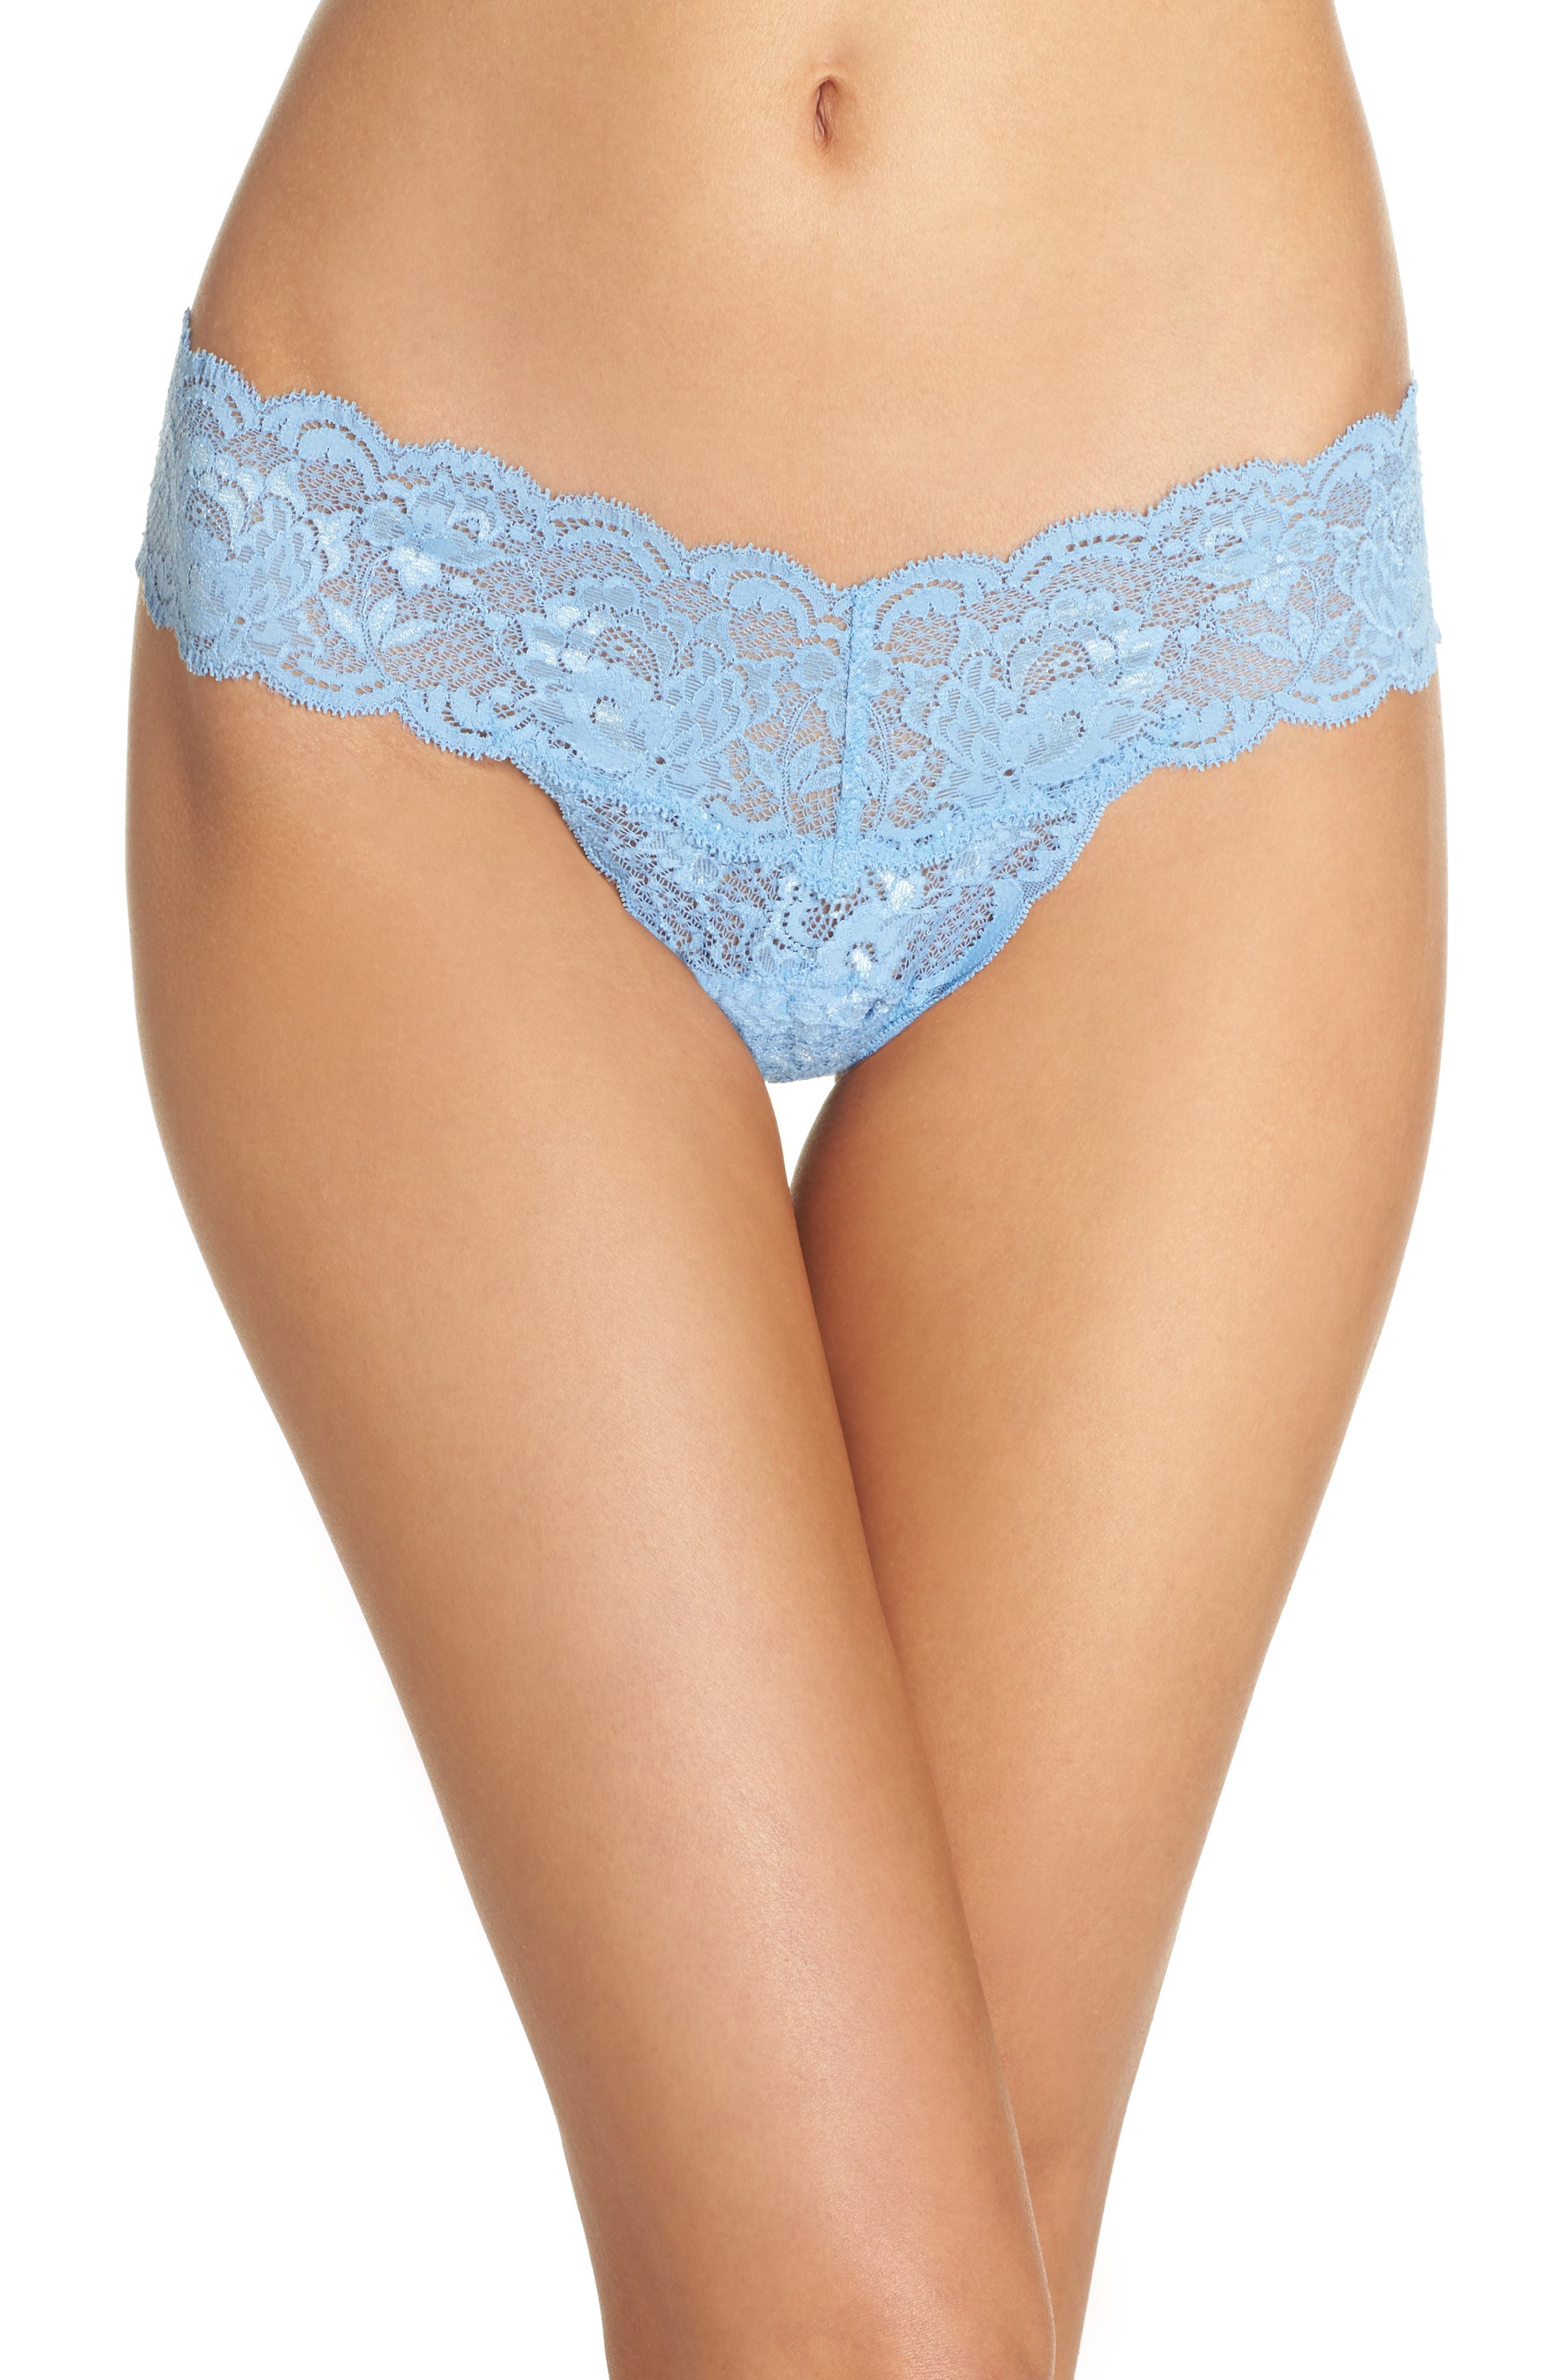 'Never Say Never Cutie' Thong,                             Alternate thumbnail 118, color,